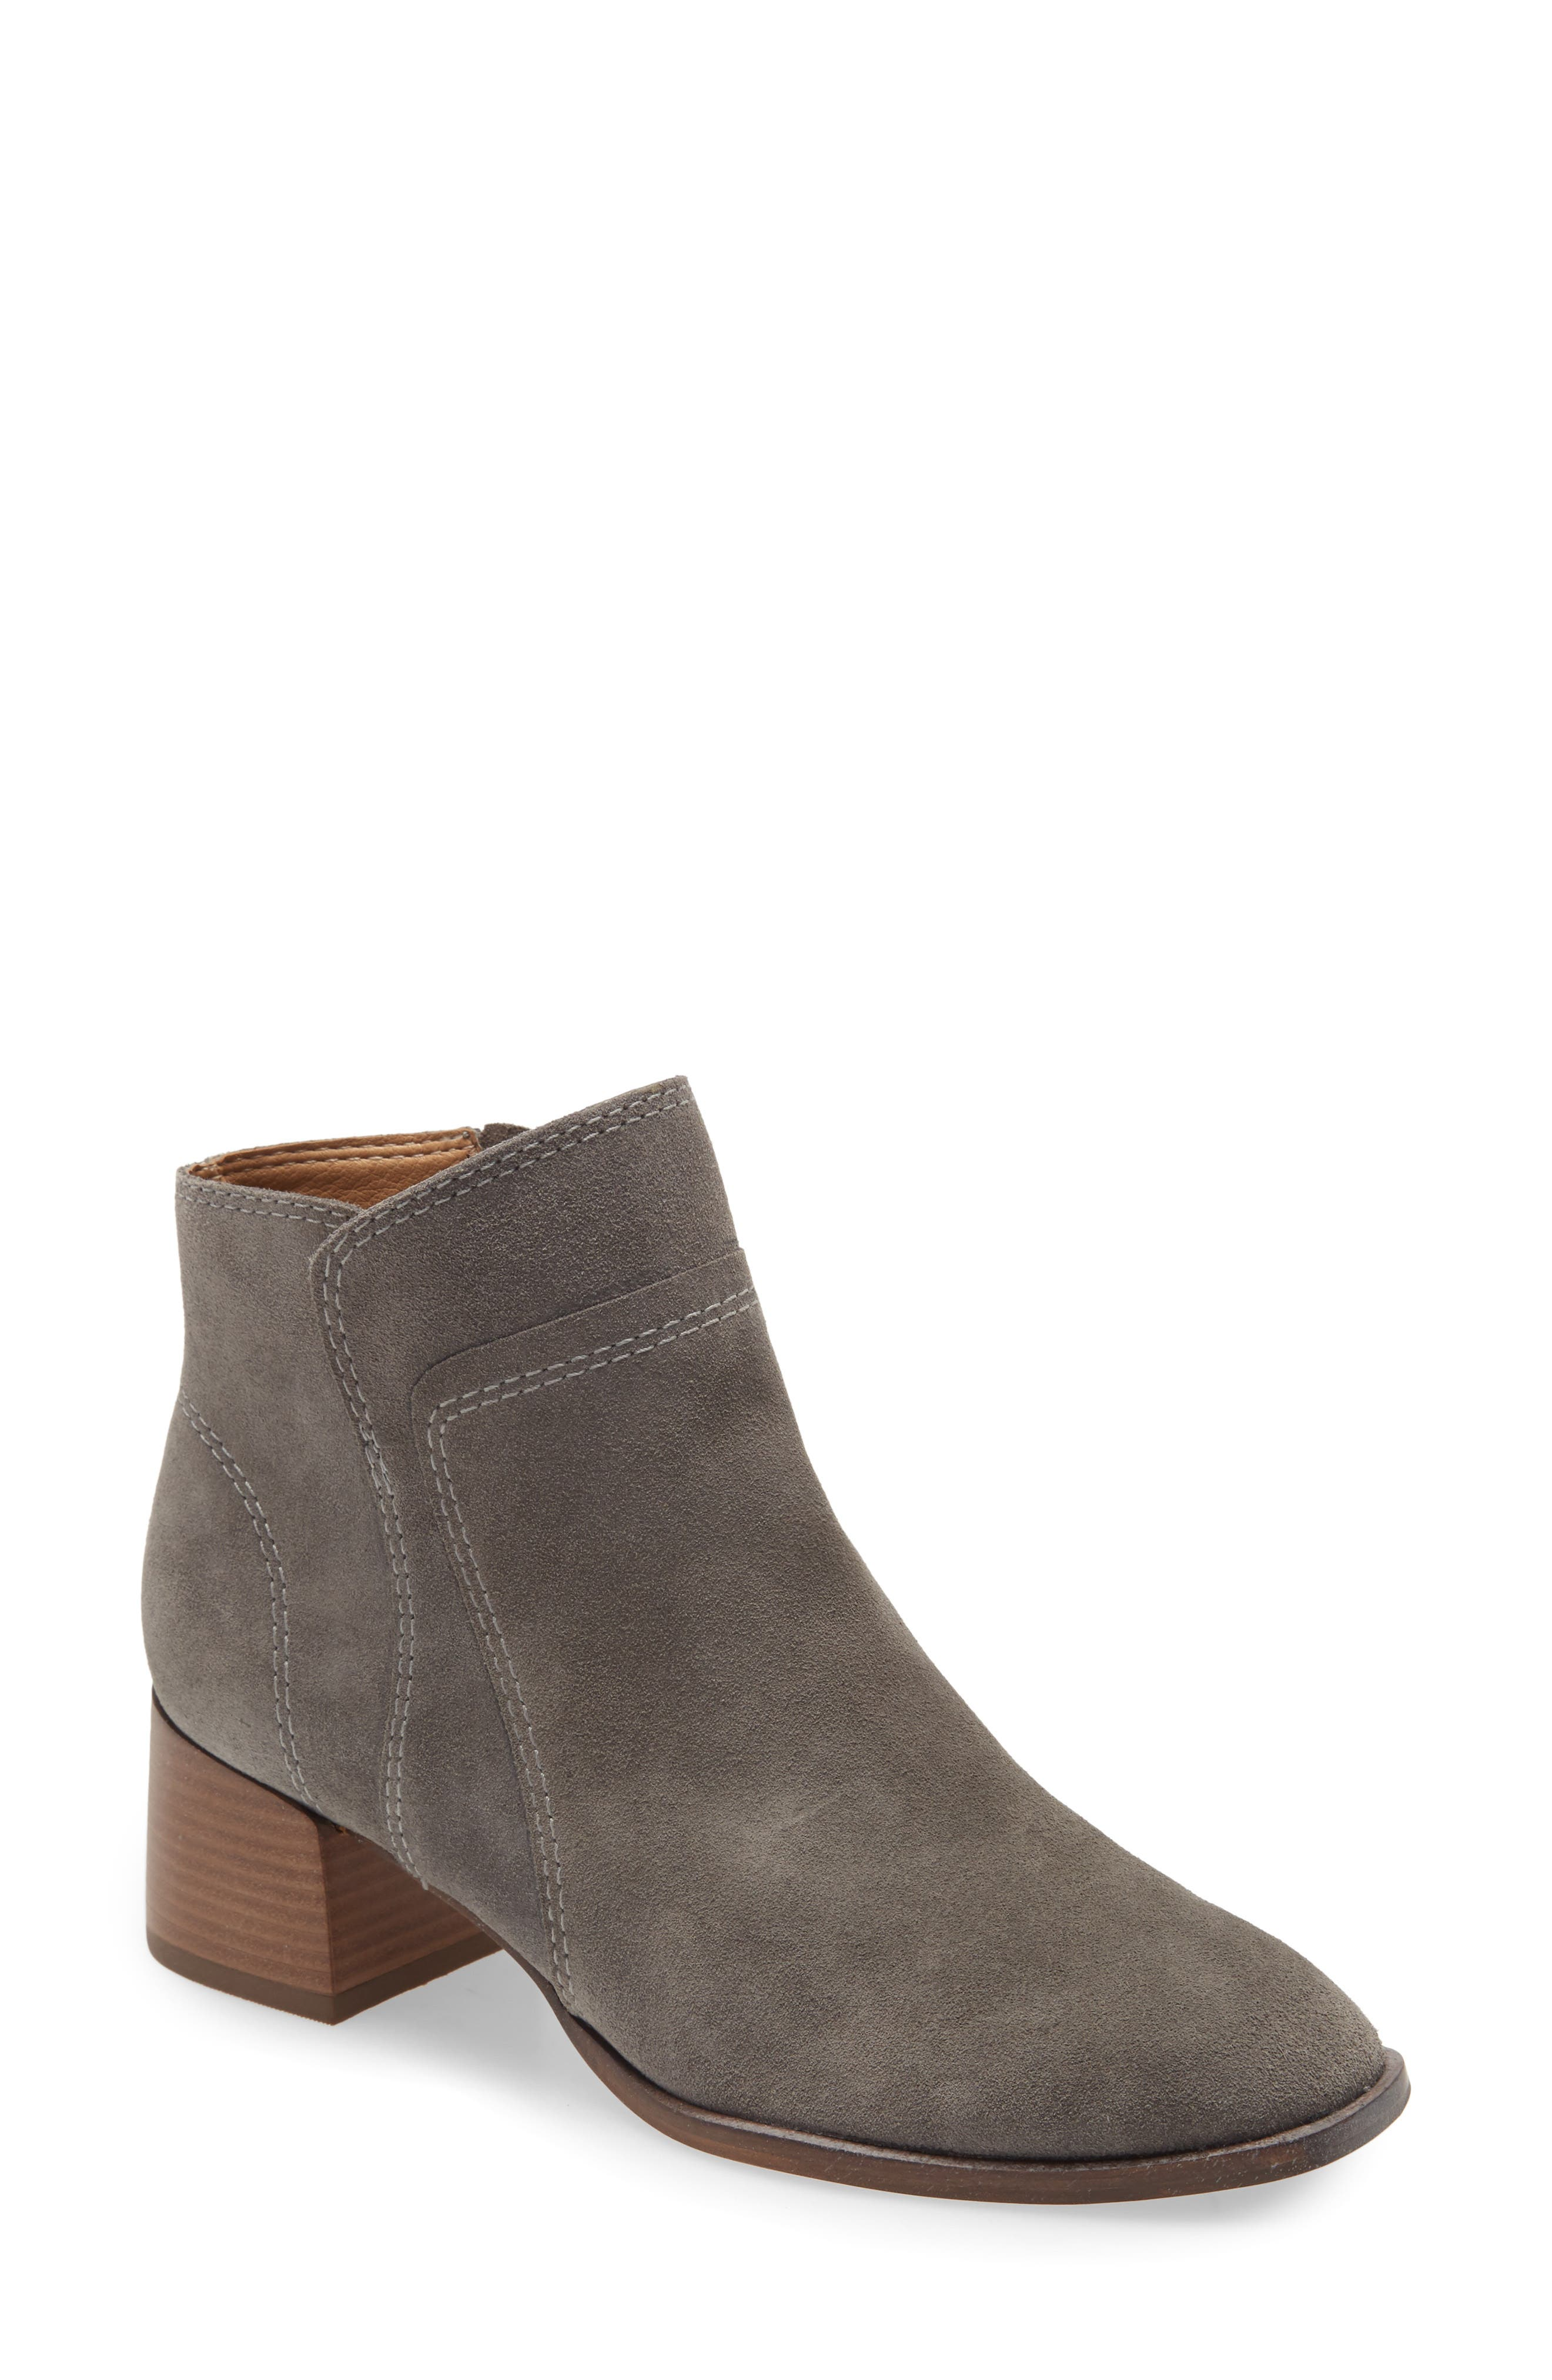 This buttery-soft suede bootie is classic and versatile, with a contrasting block heel for an elevated look and feel. Style Name: Lucky Brand Lilka Suede Bootie (Women). Style Number: 6059287. Available in stores.